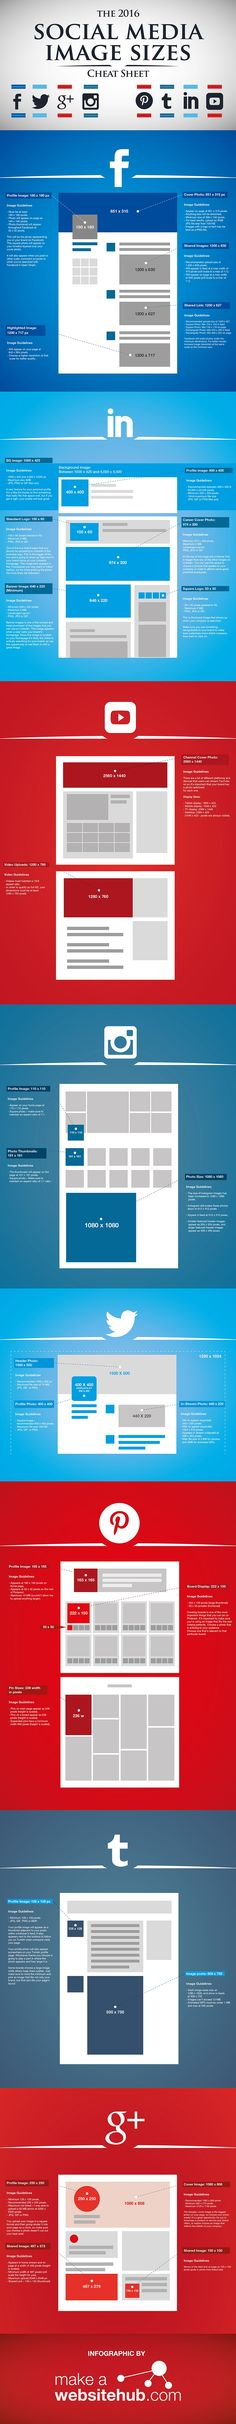 Ultimate Social Media Cheat Sheet For Perfectly Sized Images In 2016 - infographic